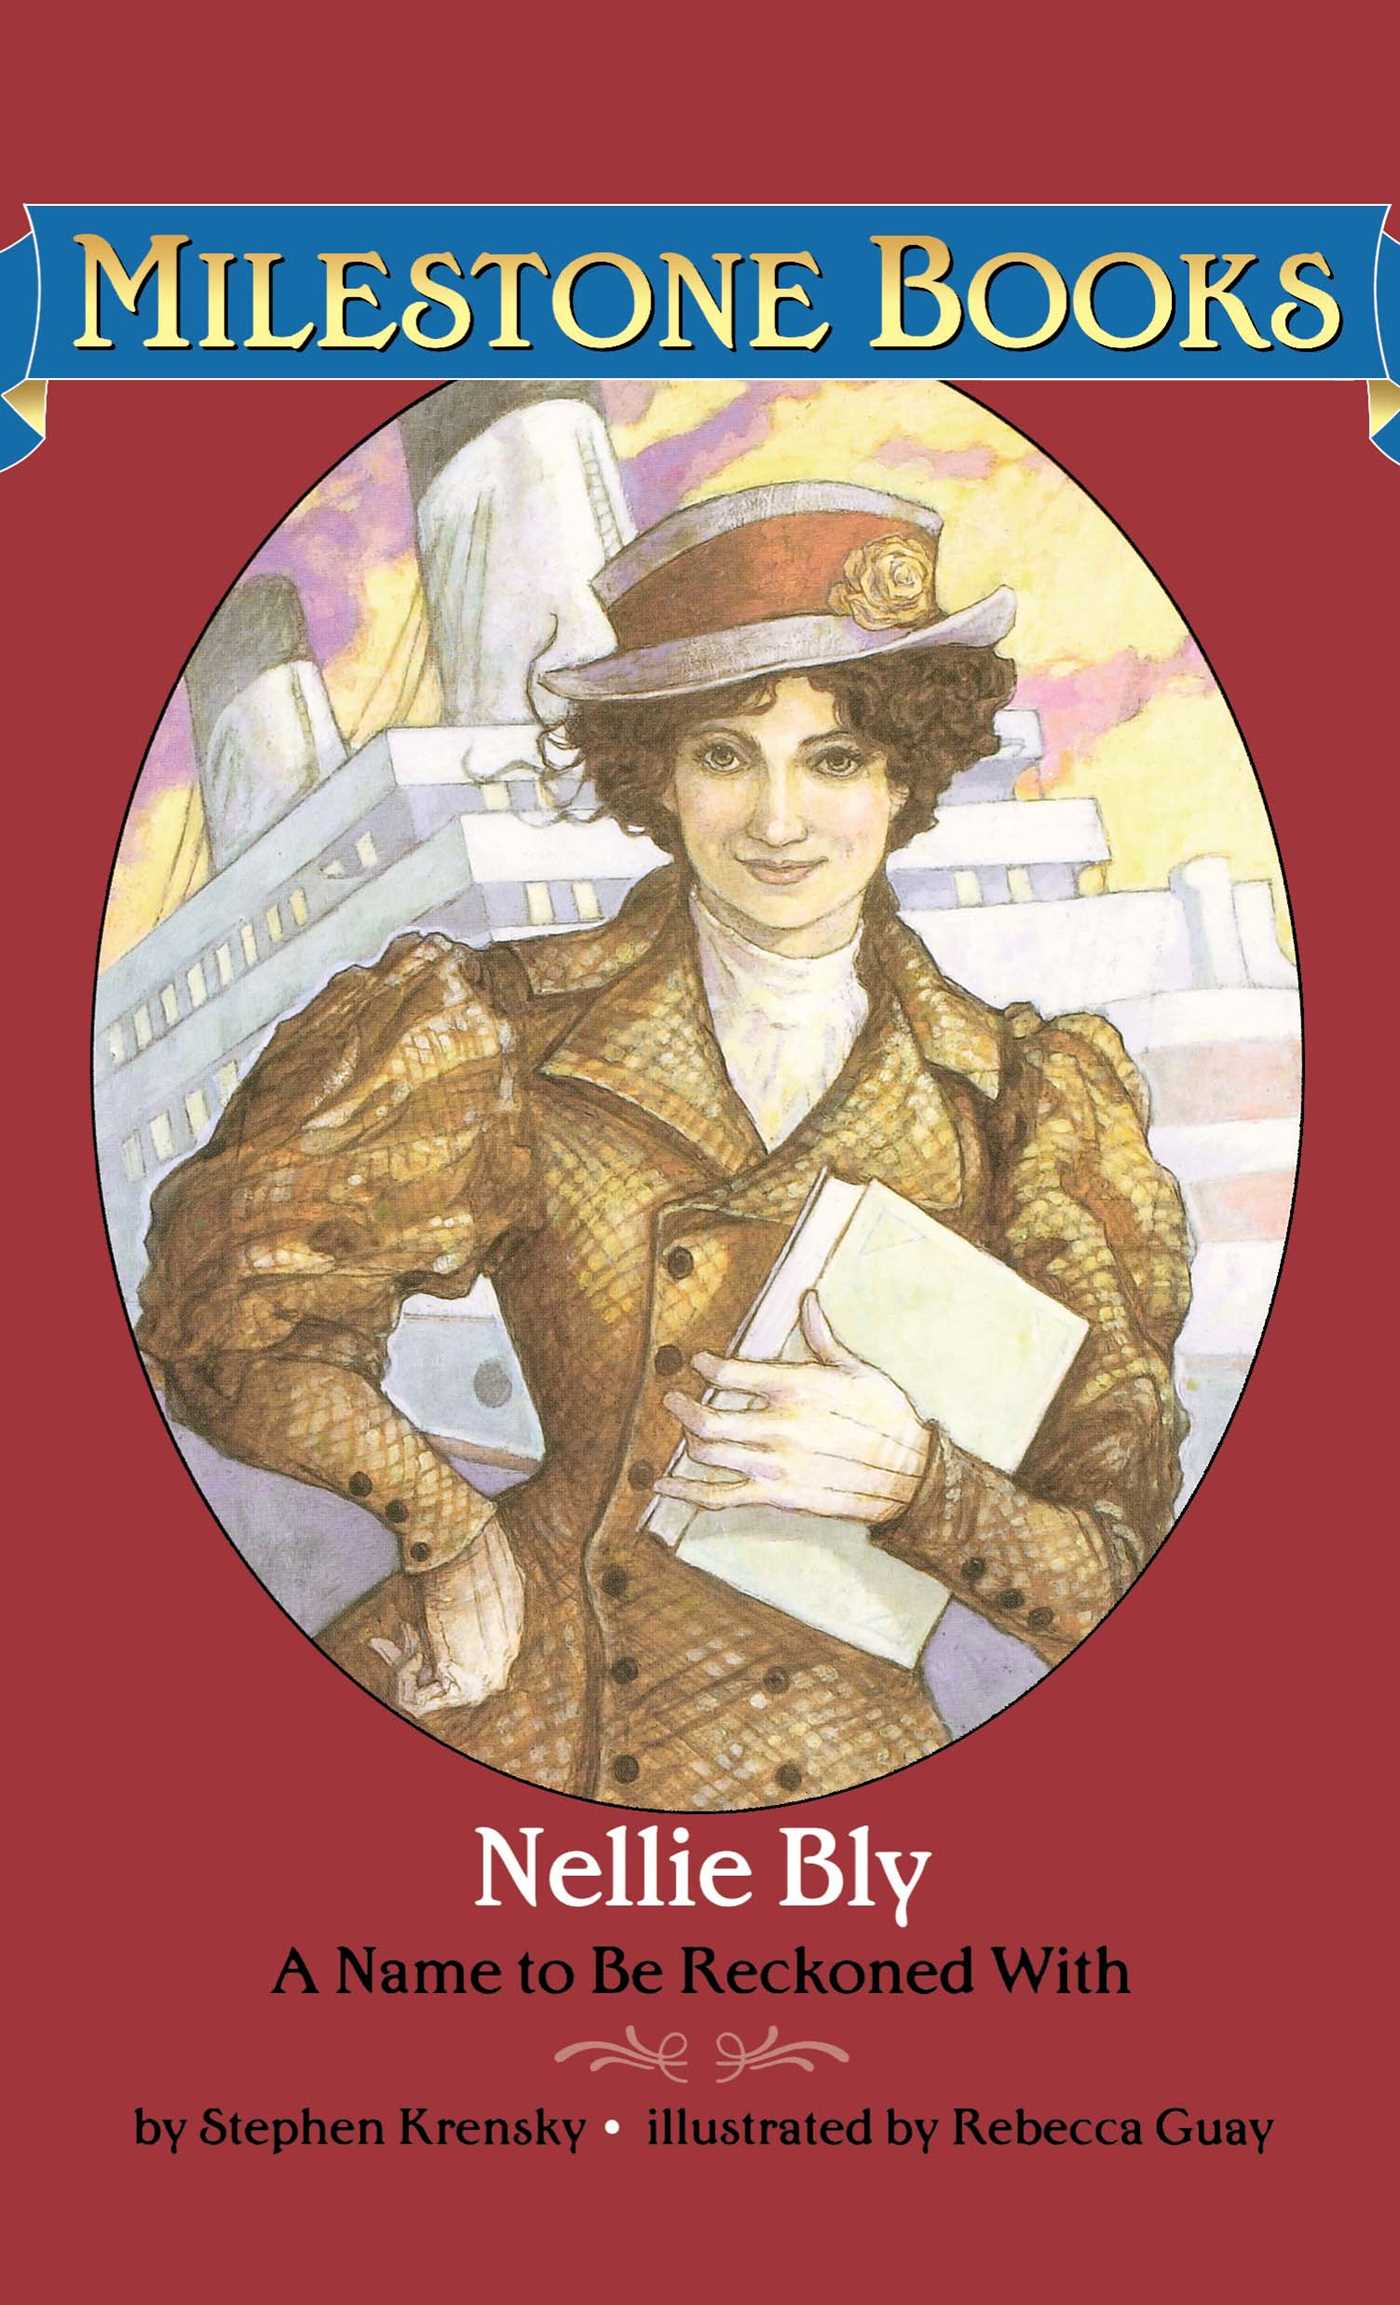 Nellie-bly-9780689855733_hr